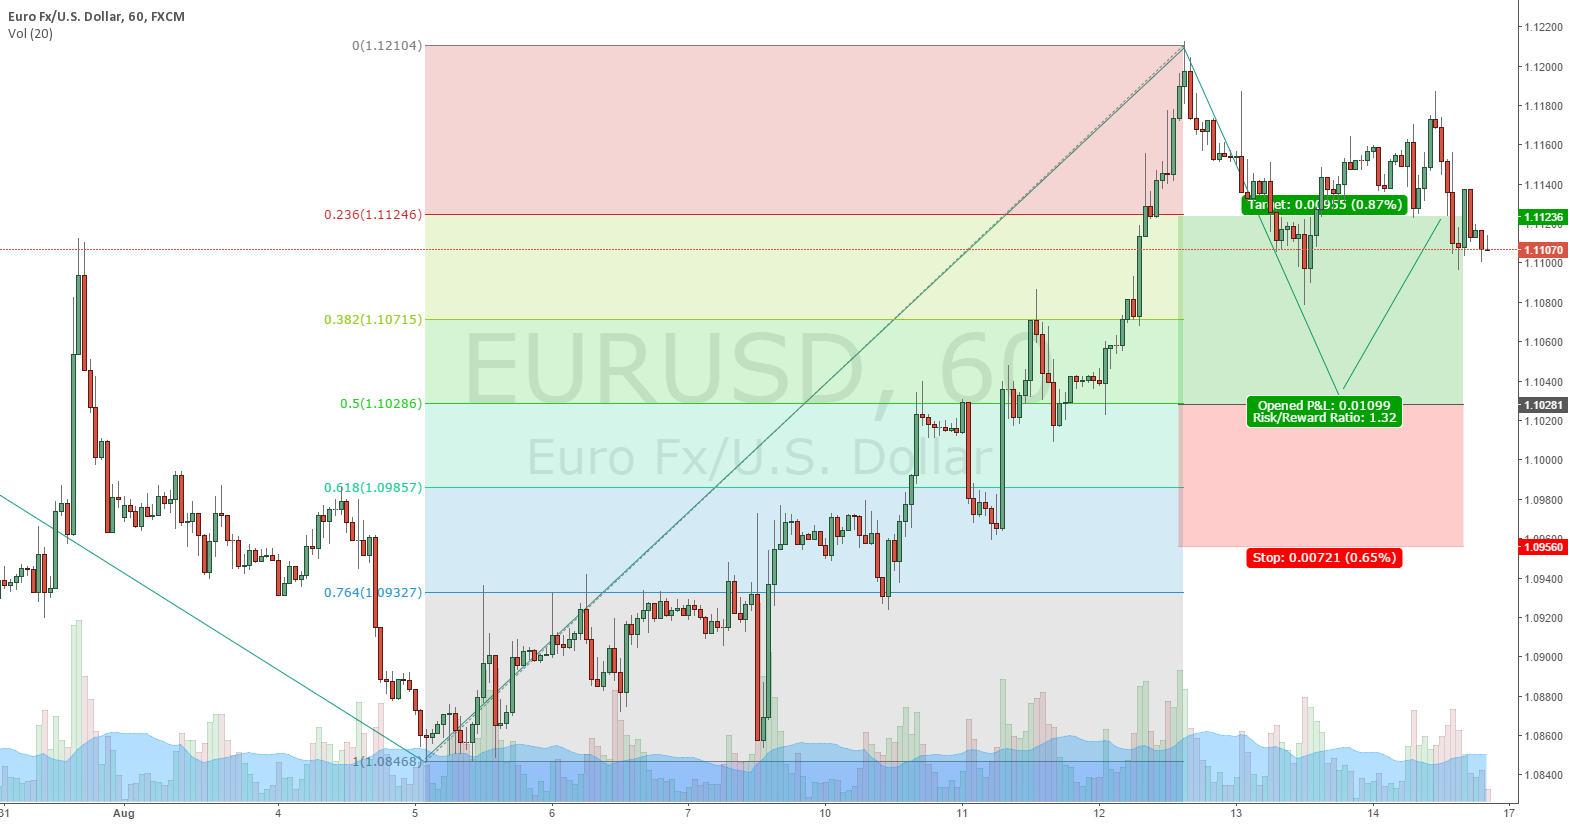 EURUSD possible third wave completion will be around 1.10281